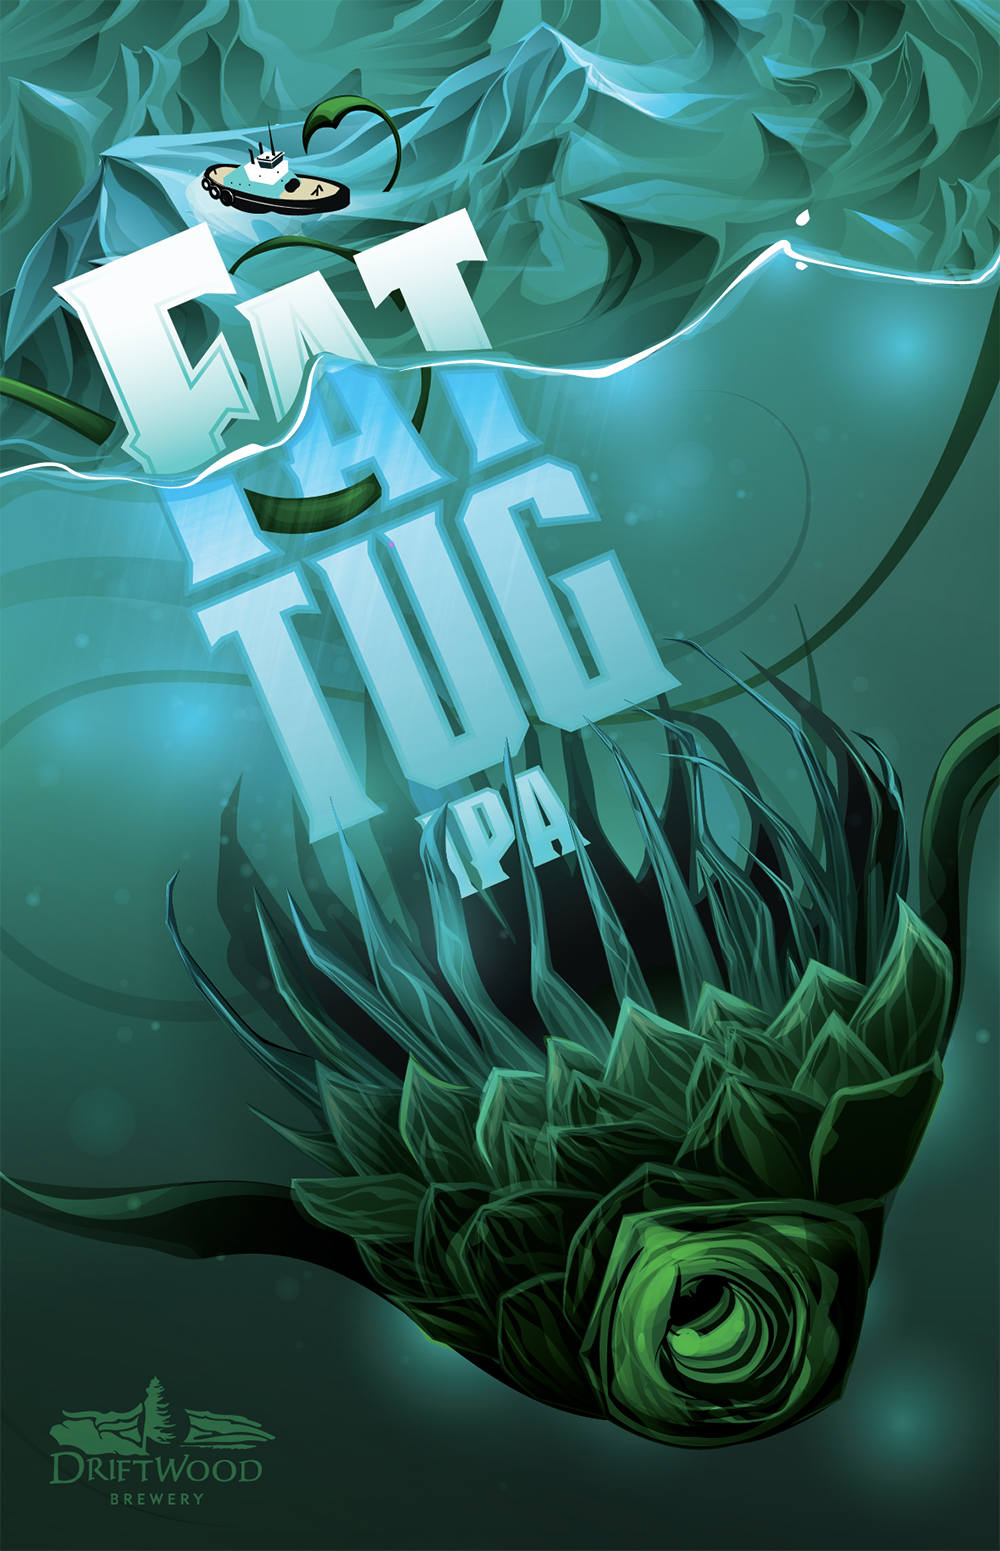 Poster Design for Driftwood Brewery's Fat Tug IPA